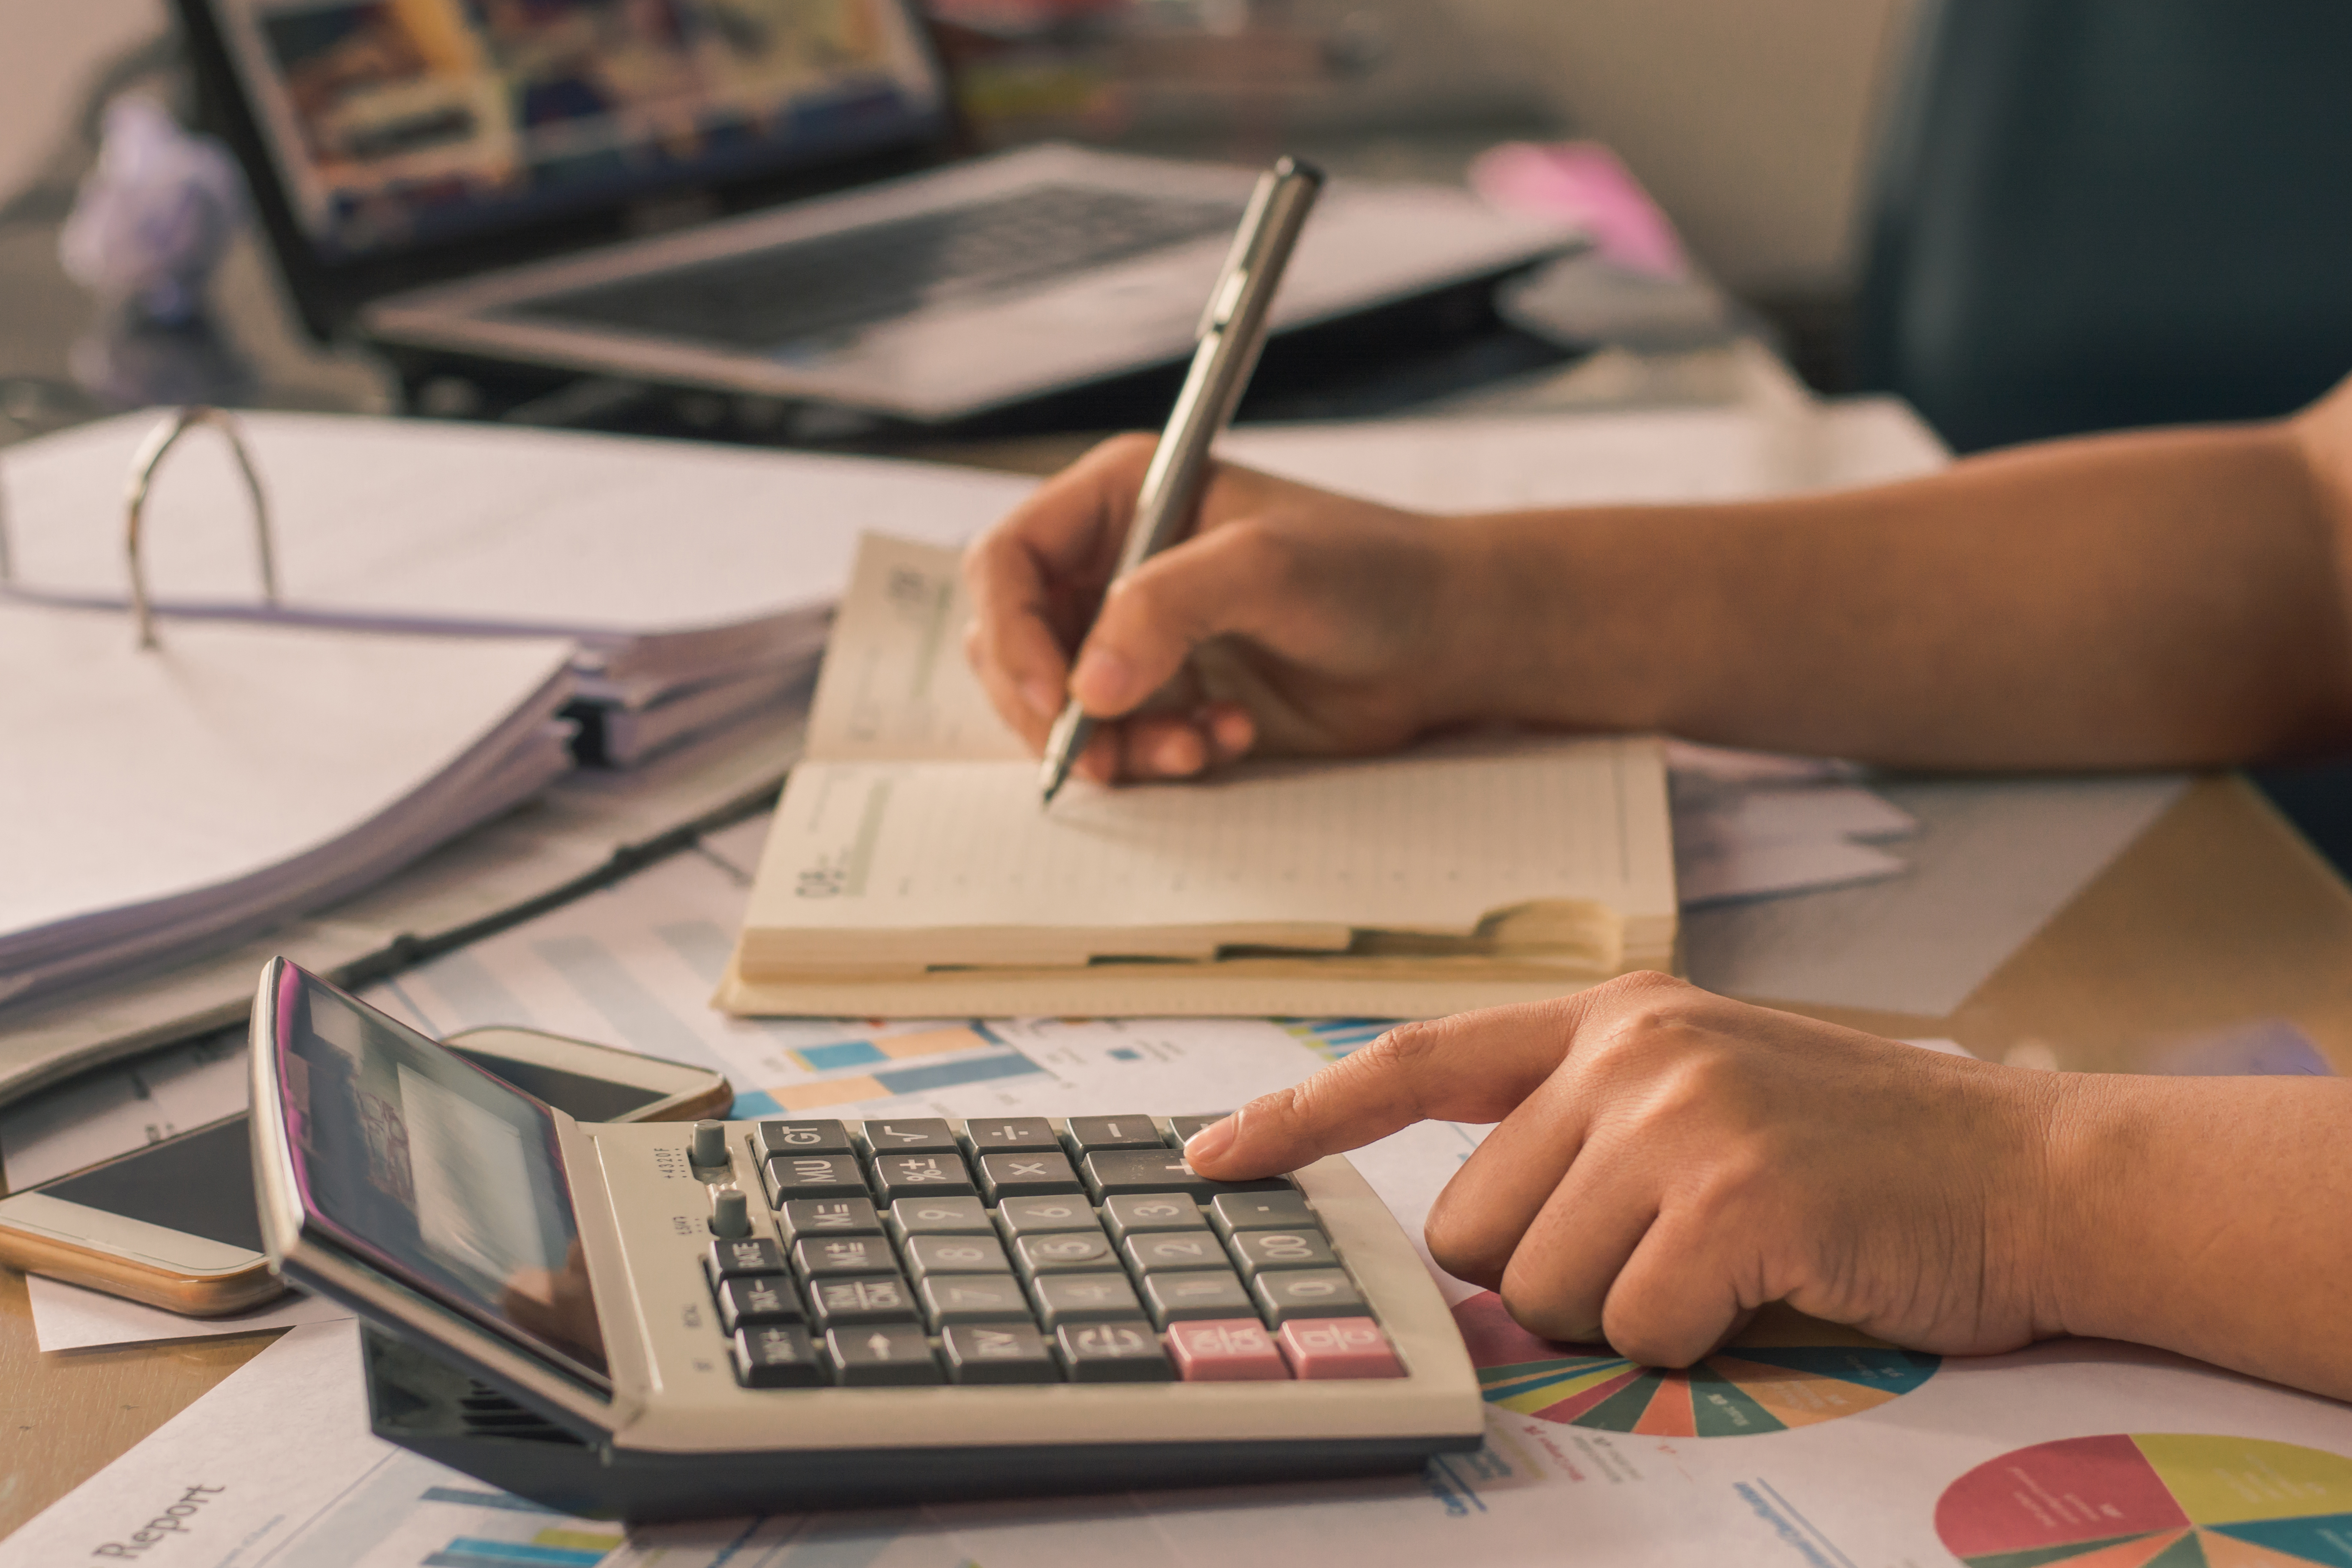 person reviewing drama theatre budget documents with calculator and notes